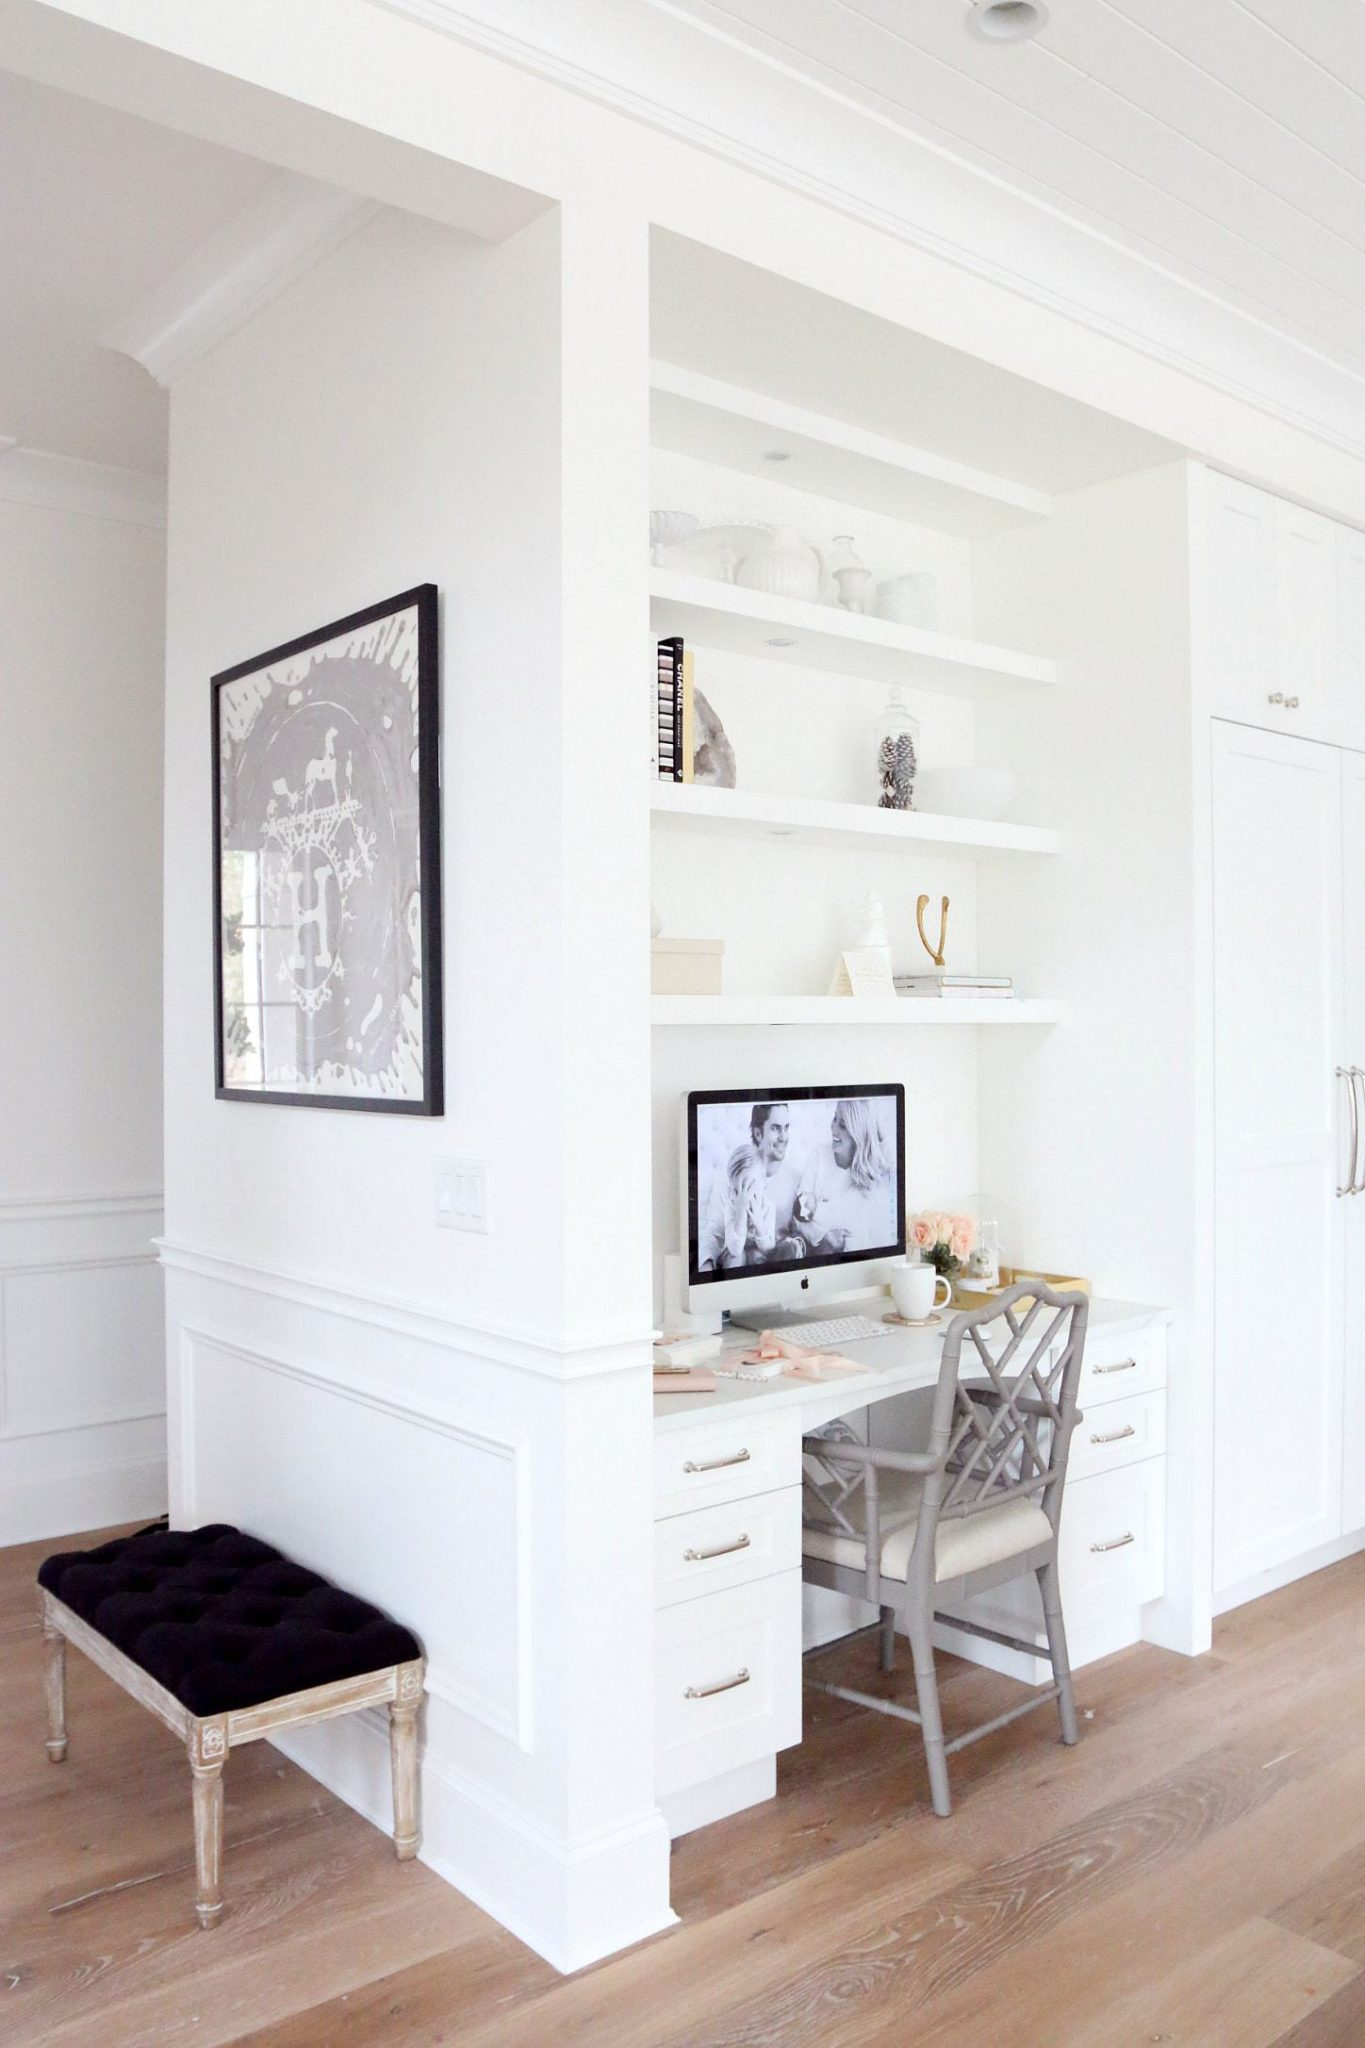 Bright, modern workspace with a decorative shelving unit above it